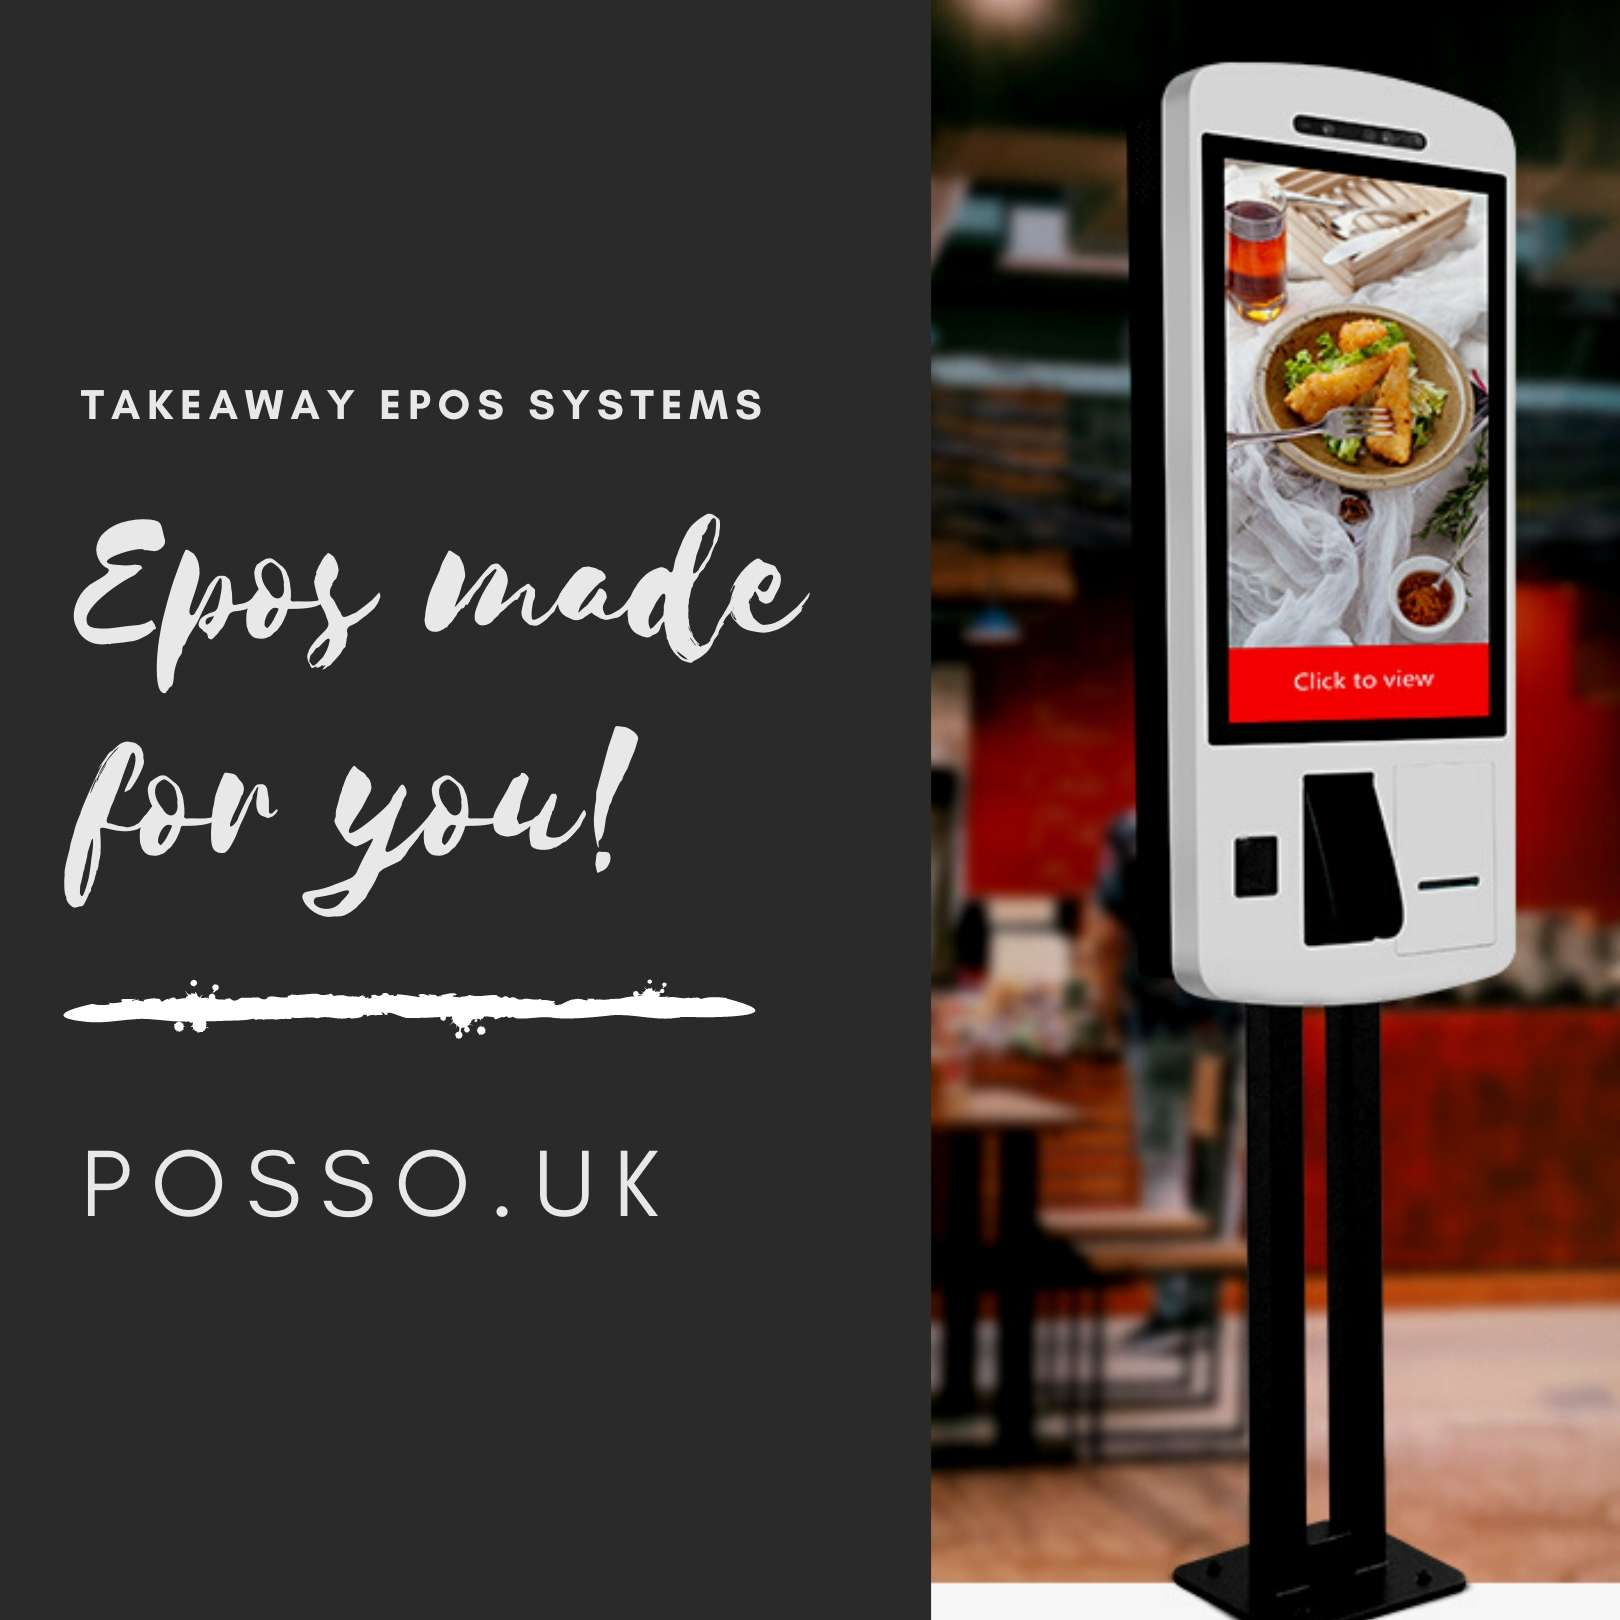 A picture of takeaway epos systems